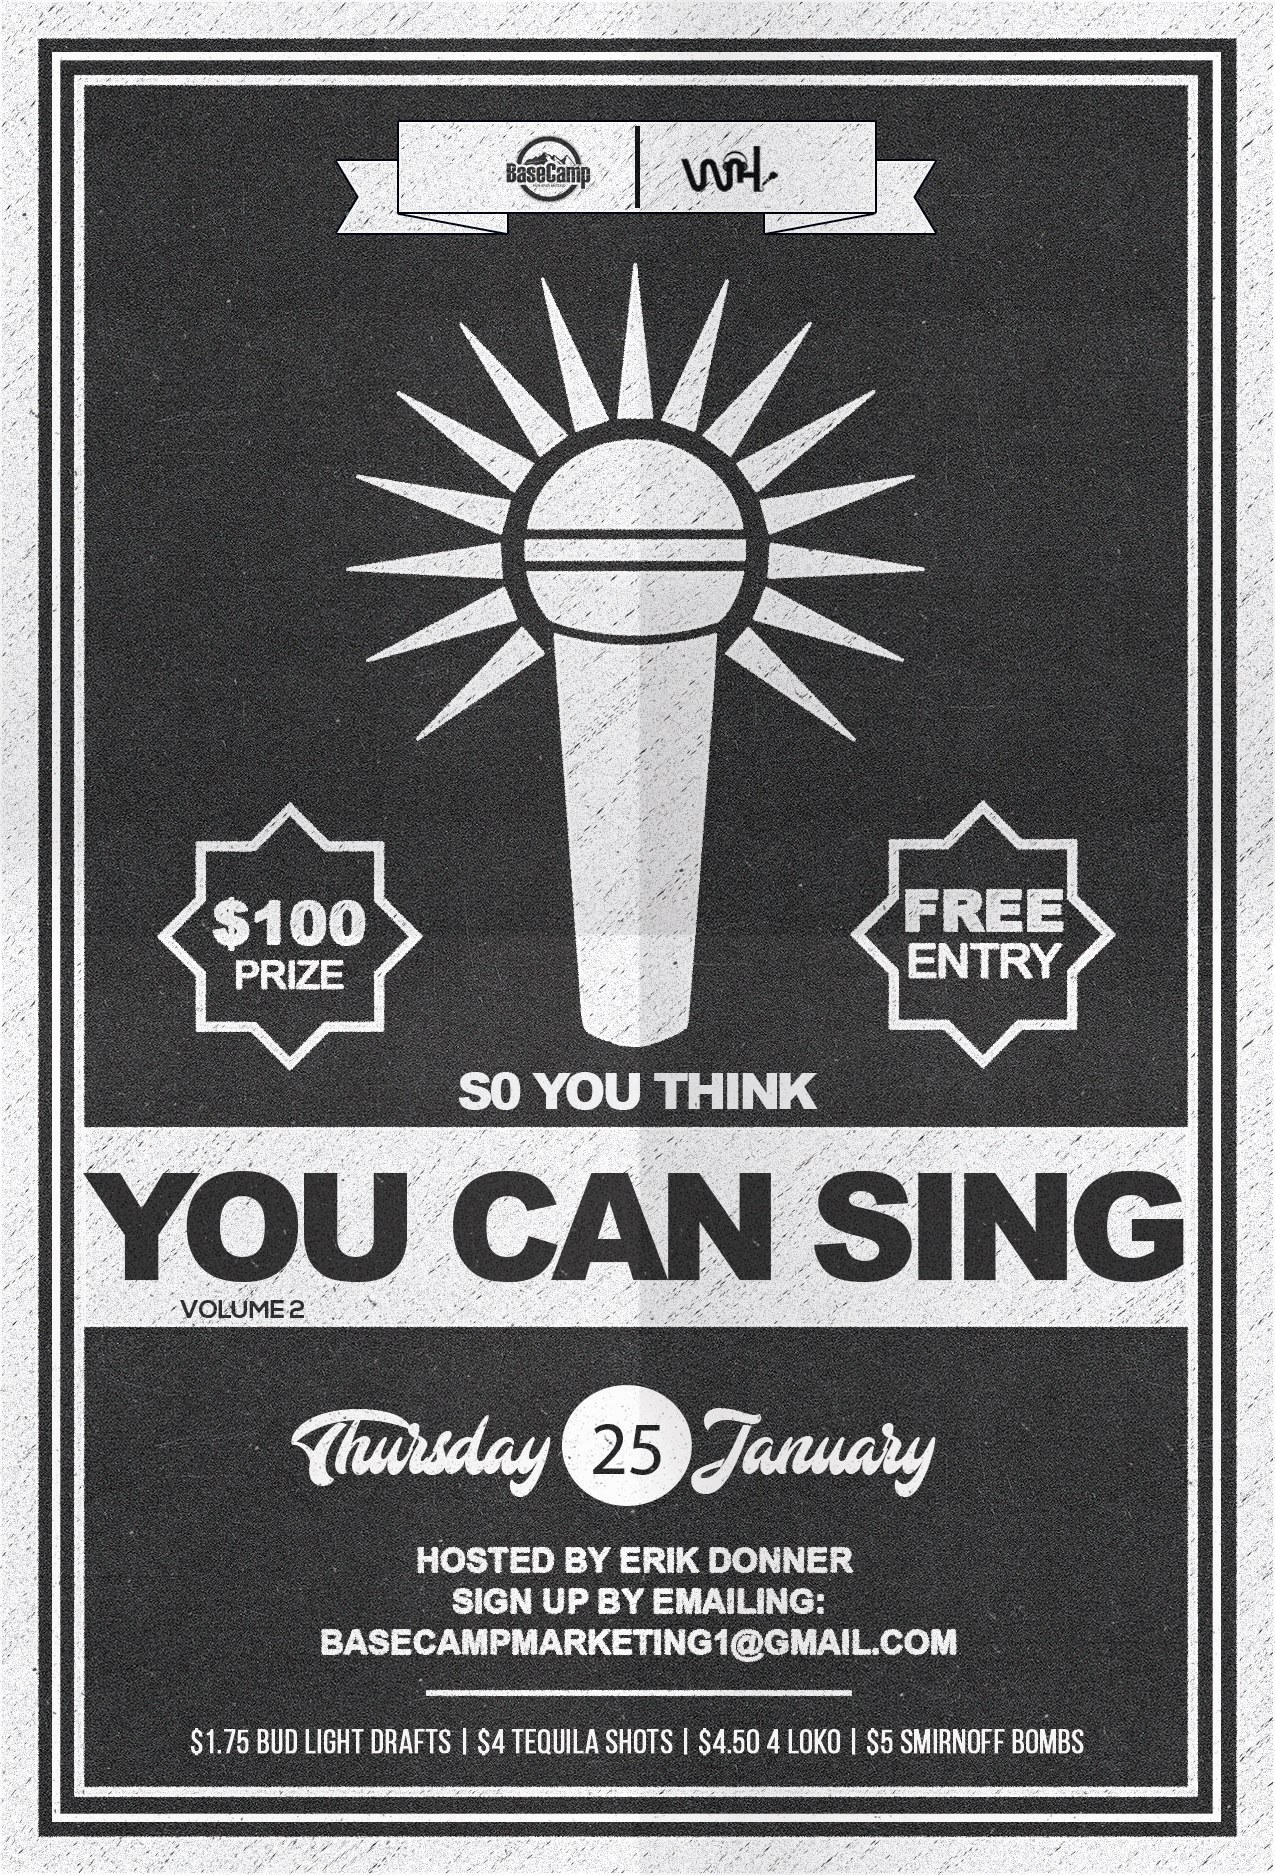 So You Think You Can Sing? Live Karaoke Contest - Vol. 2